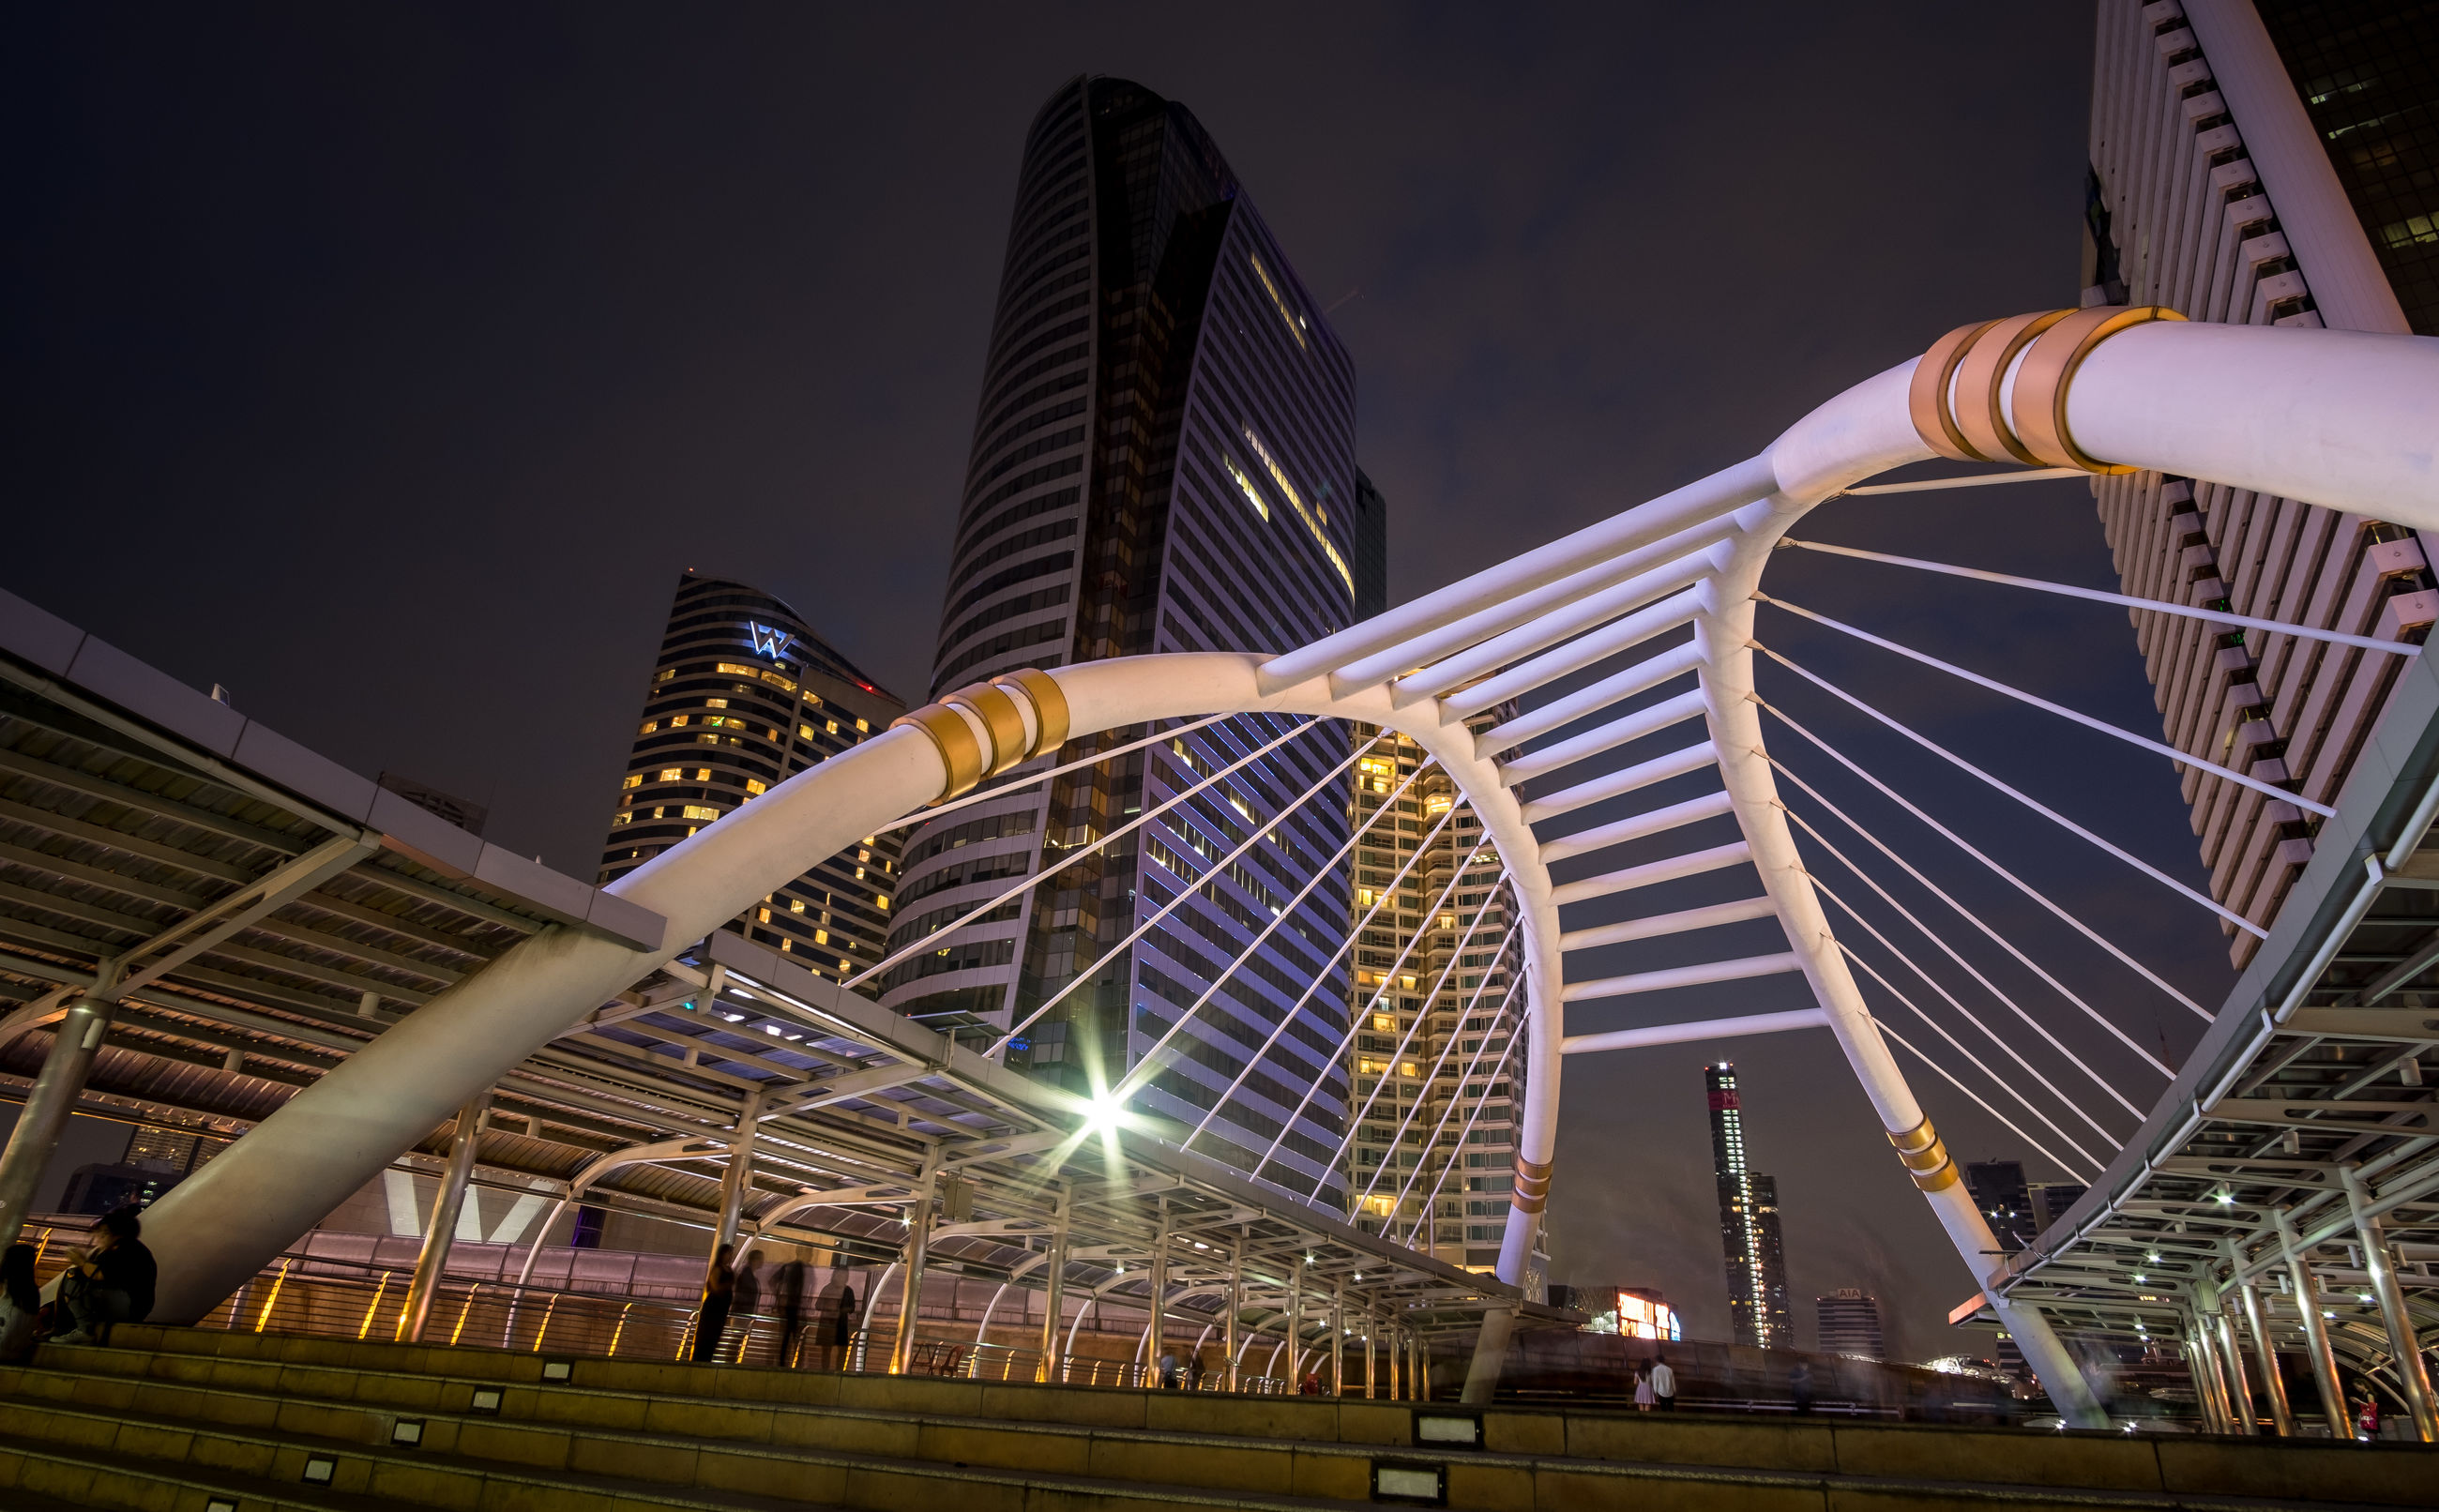 architecture, illuminated, building exterior, night, city, built structure, skyscraper, modern, low angle view, city life, sky, outdoors, people